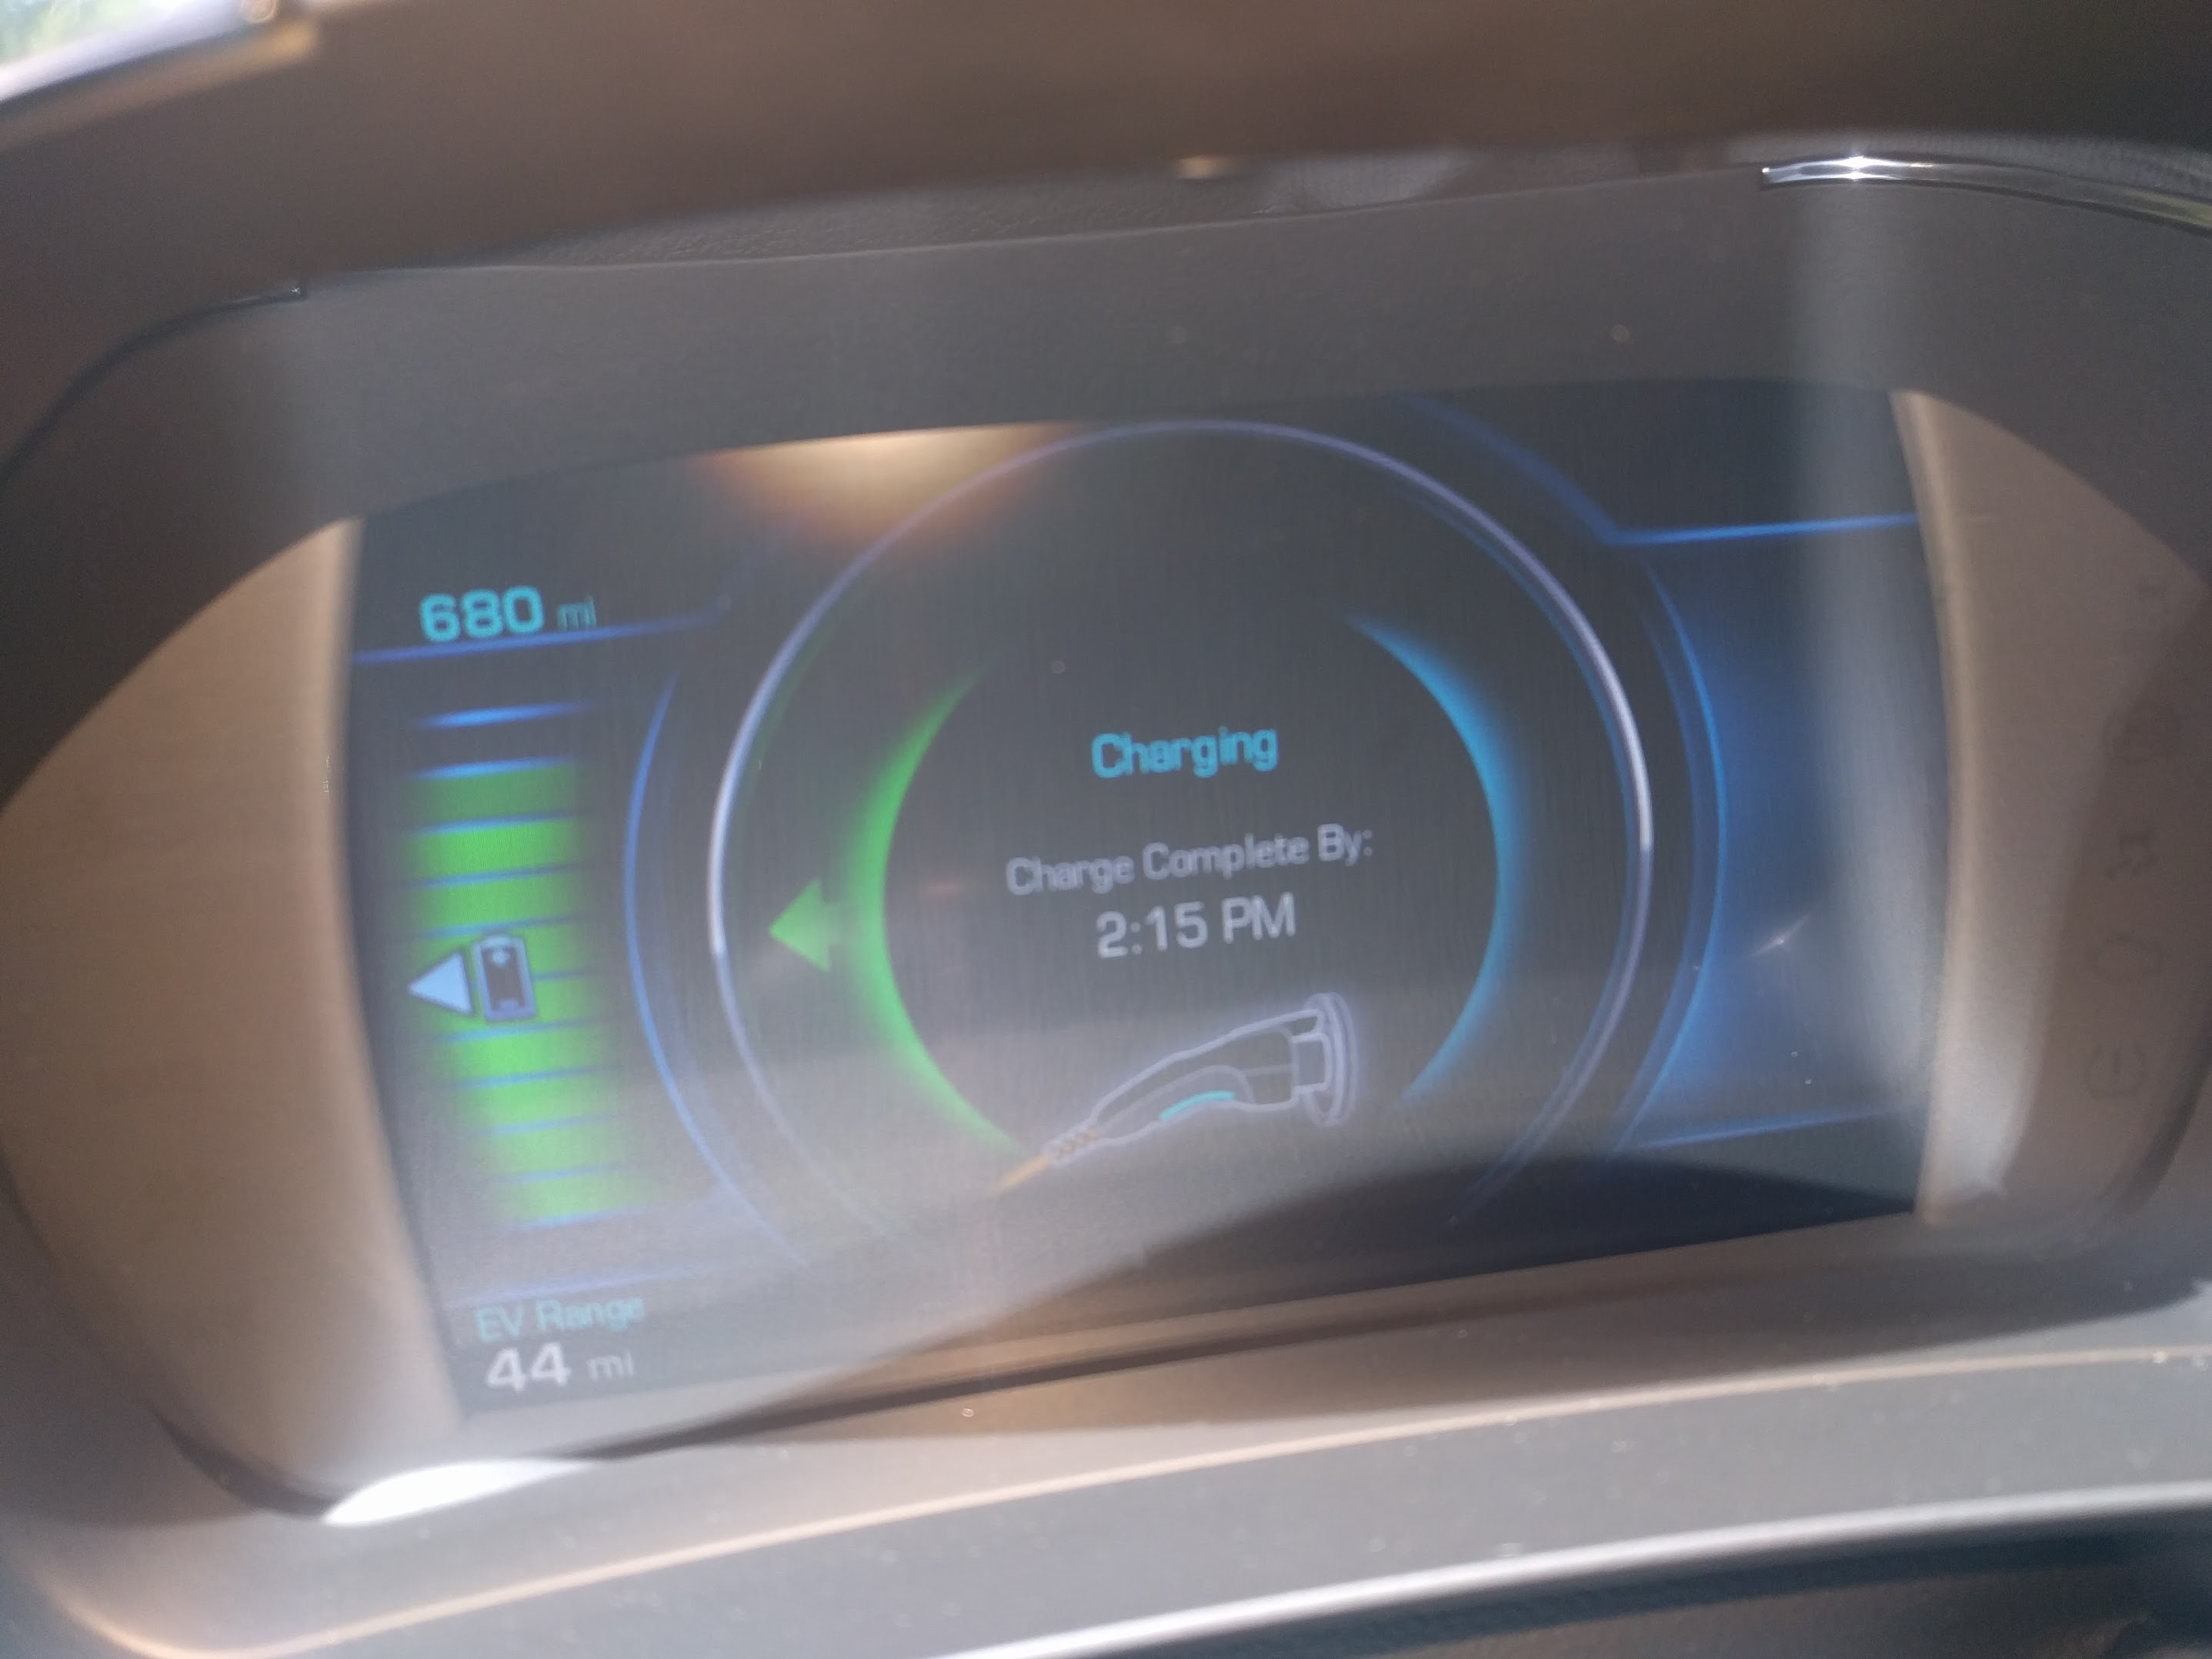 2017 Chevy Volt Review Day 3-4: Driving in rain, heat, night